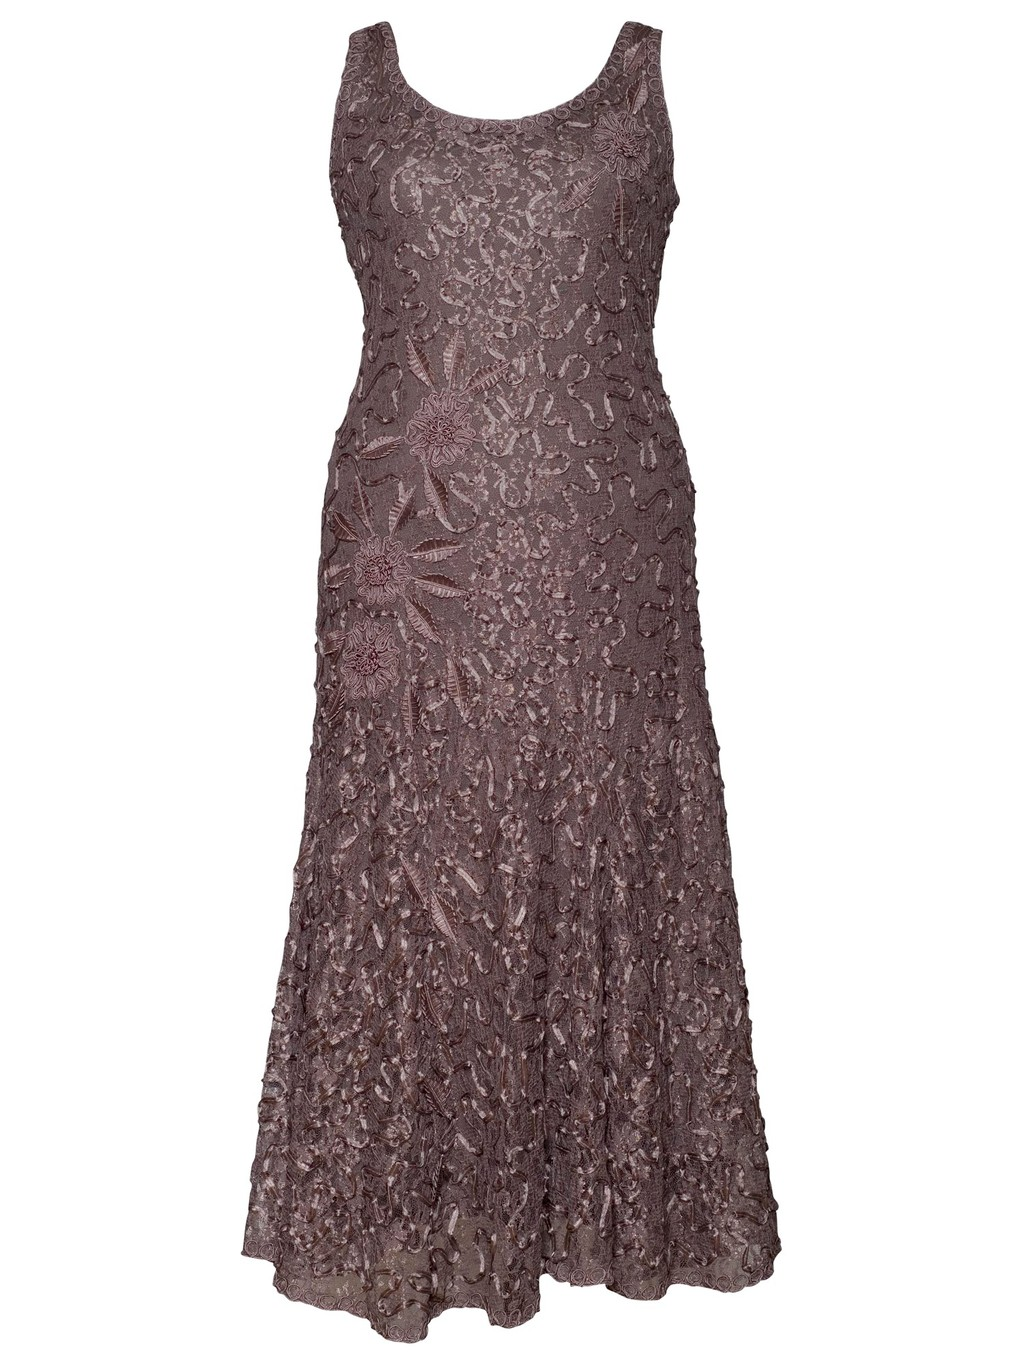 Lace Cornelli Embroidered Dress - neckline: round neck; sleeve style: sleeveless; style: maxi dress; length: ankle length; predominant colour: taupe; occasions: evening, occasion; fit: body skimming; fibres: nylon - mix; sleeve length: sleeveless; texture group: lace; pattern type: fabric; pattern: patterned/print; embellishment: embroidered; season: a/w 2013